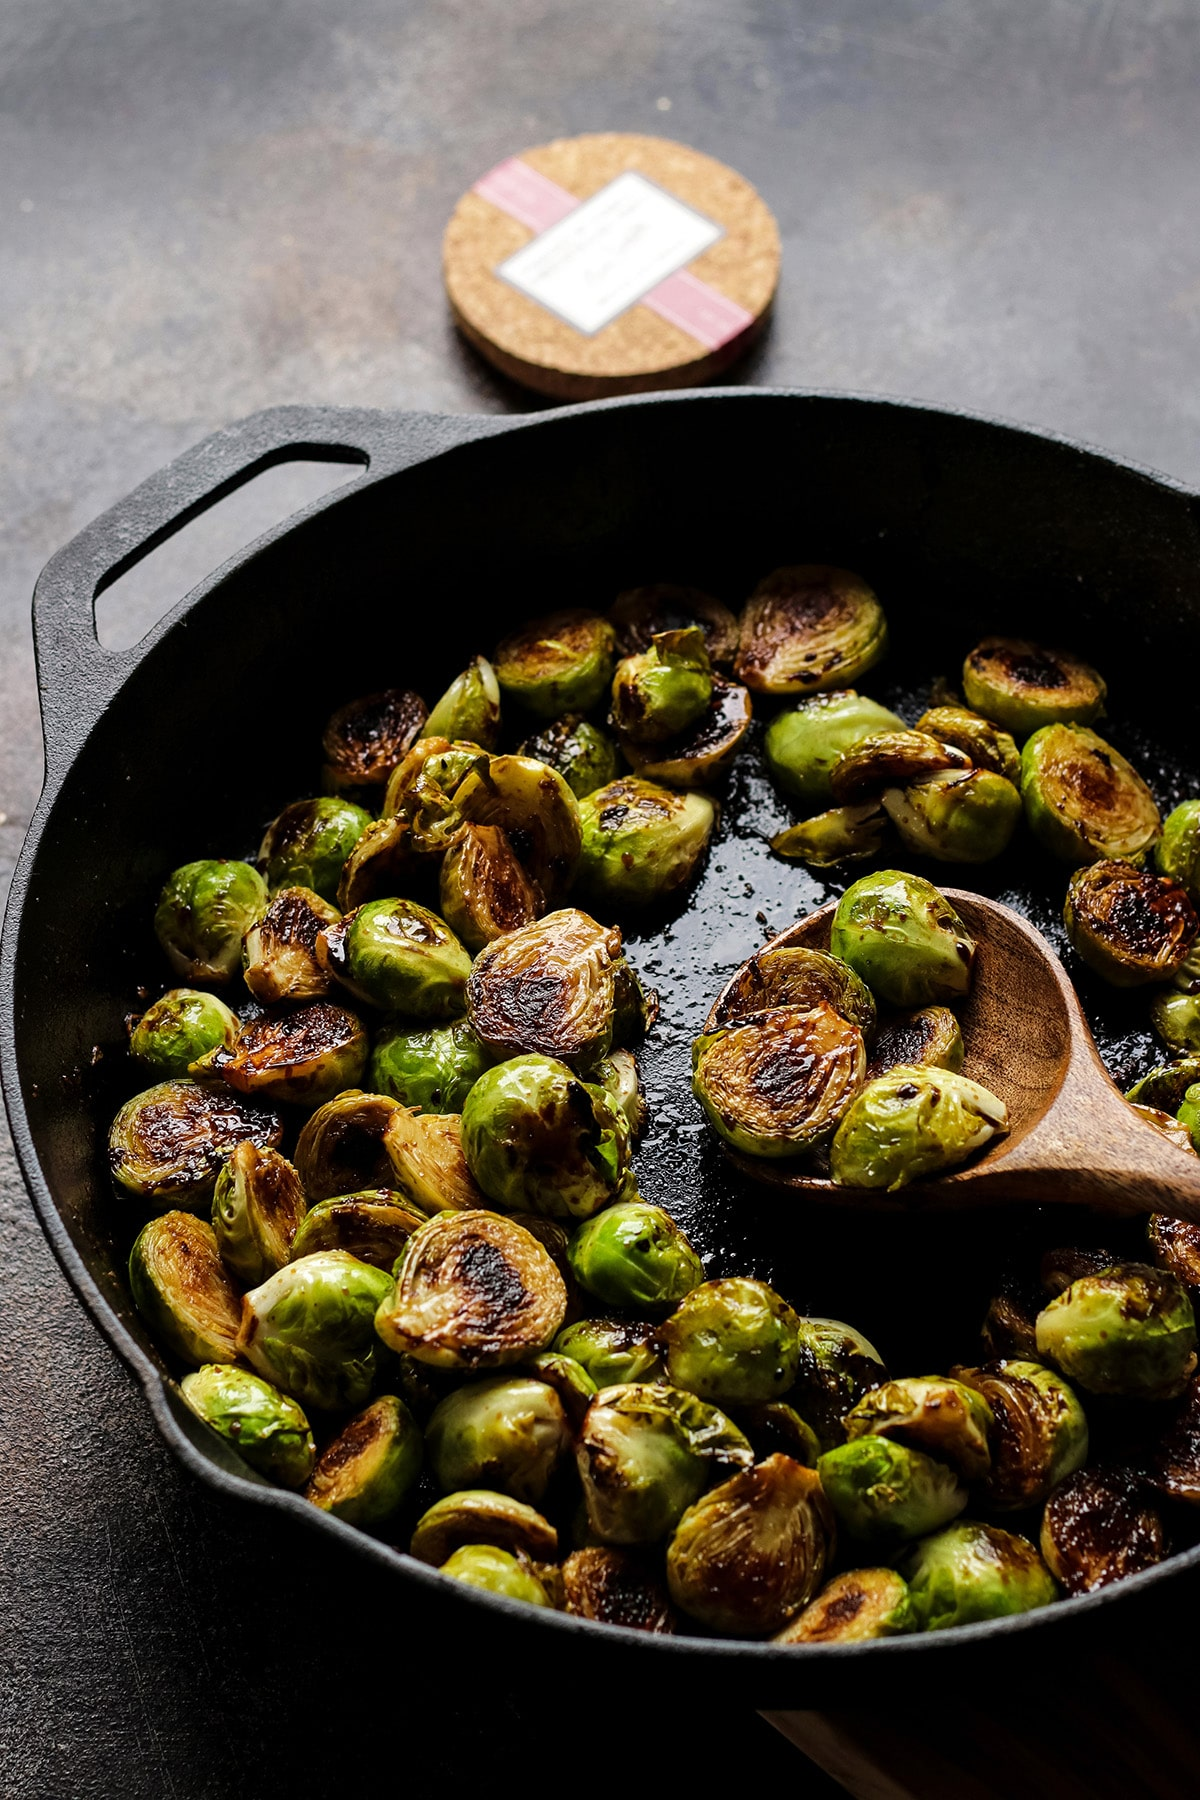 Glazed Brussels Sprouts in a Cast Iron Skillet.